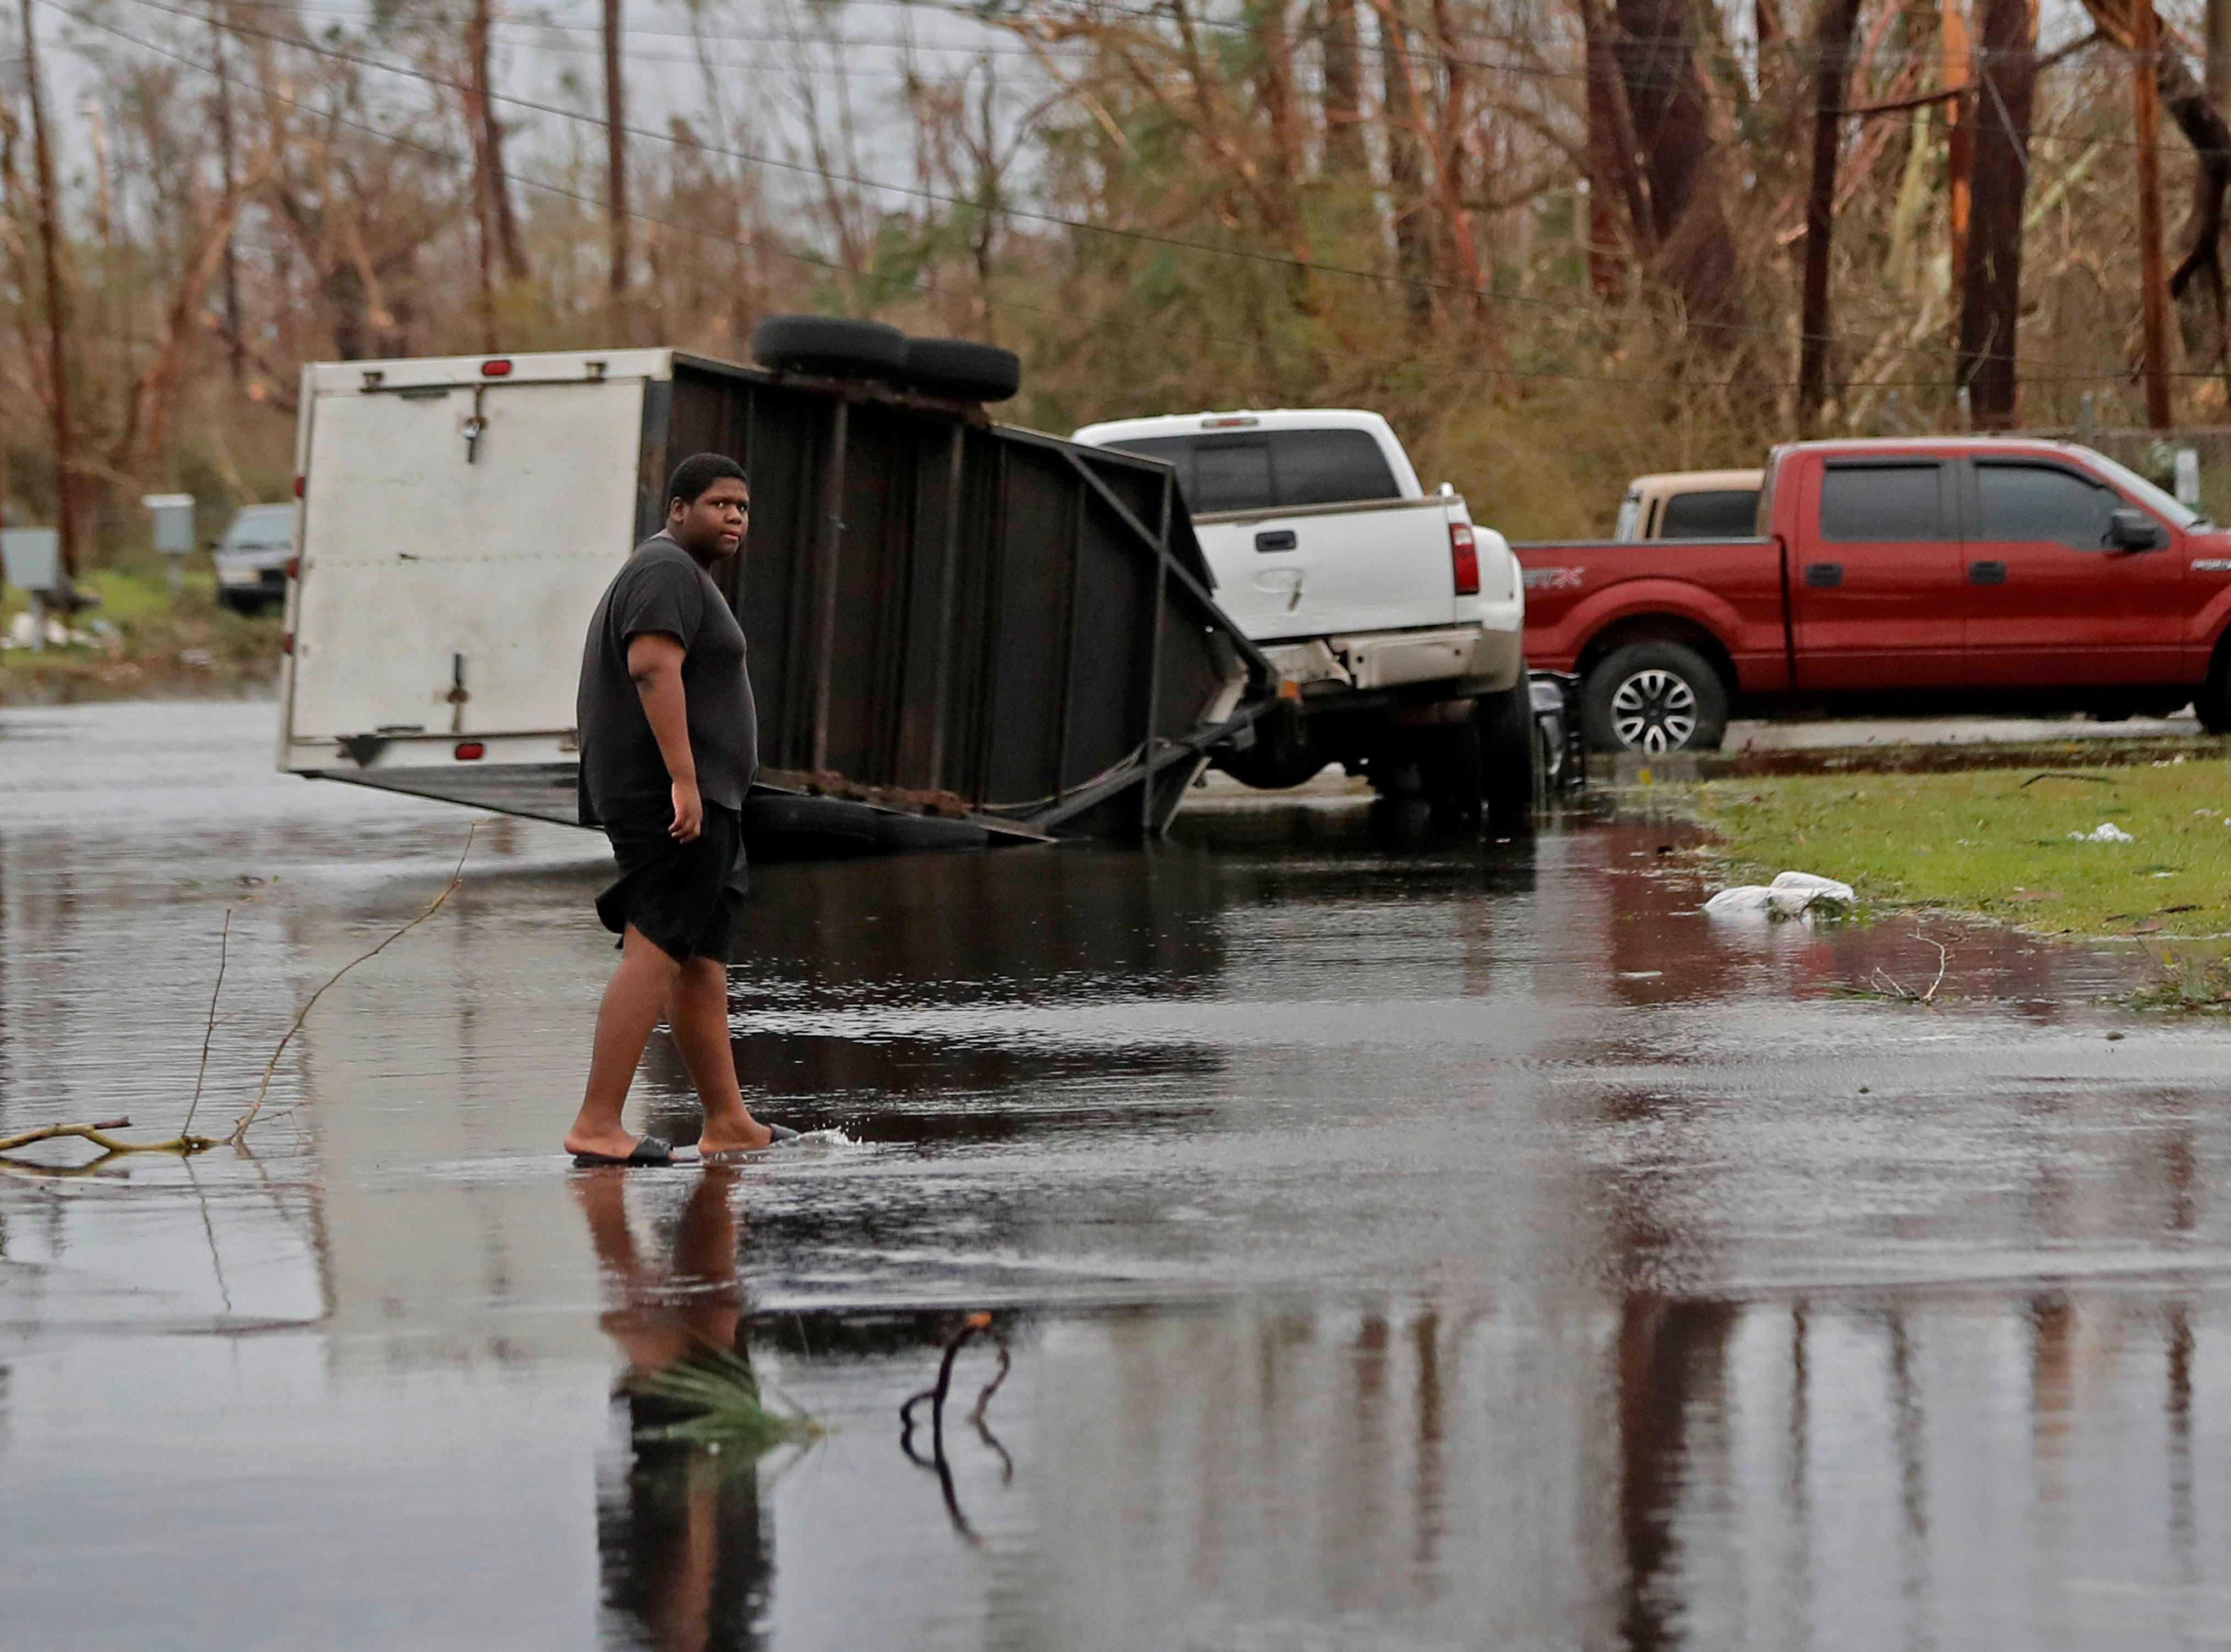 A man walks in the street of his heavily damaged neighborhood in the aftermath of Hurricane Michael in Panama City, Fla., Wednesday, Oct. 10, 2018. Supercharged by abnormally warm waters in the Gulf of Mexico, Hurricane Michael slammed into the Florida Panhandle with terrifying winds of 155 mph Wednesday, splintering homes and submerging neighborhoods.